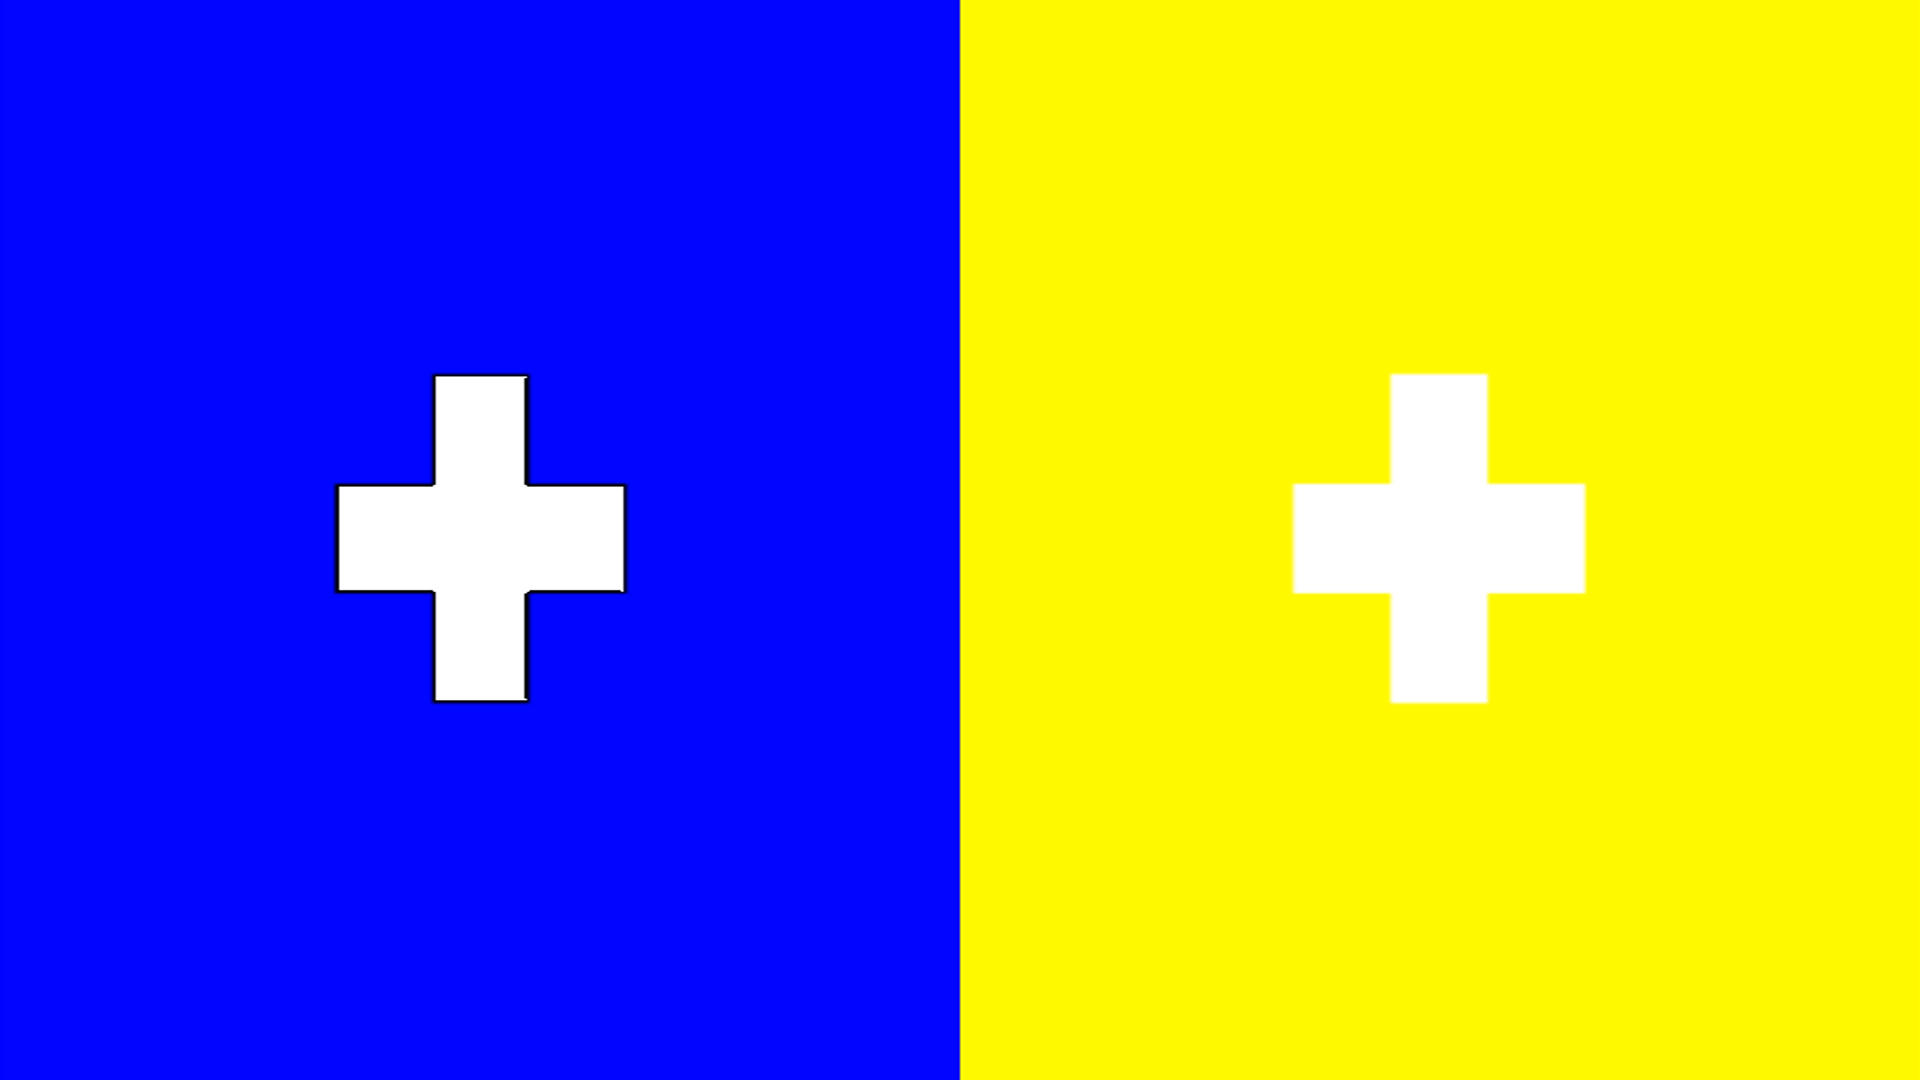 File Impossible Colors  Blue and Yellow  for 3dTV pngFile Impossible Colors  Blue and Yellow  for 3dTV png   Wikimedia  . New Colors For 2013. Home Design Ideas